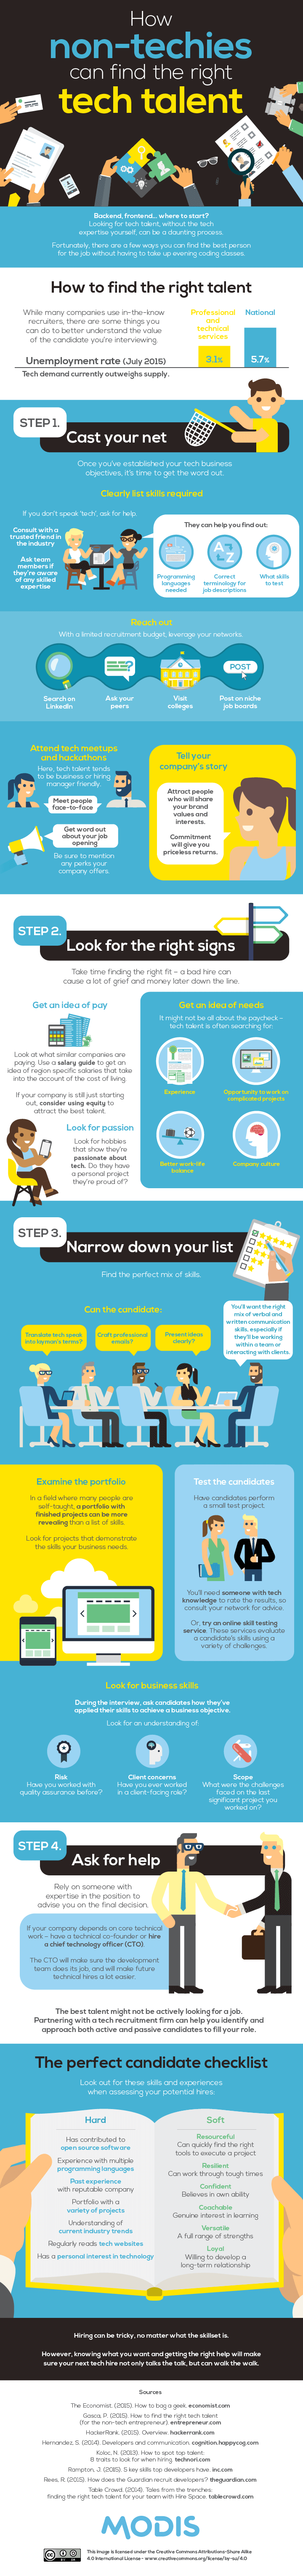 How Non-Techies Can Find the Right Tech Talent #infographic